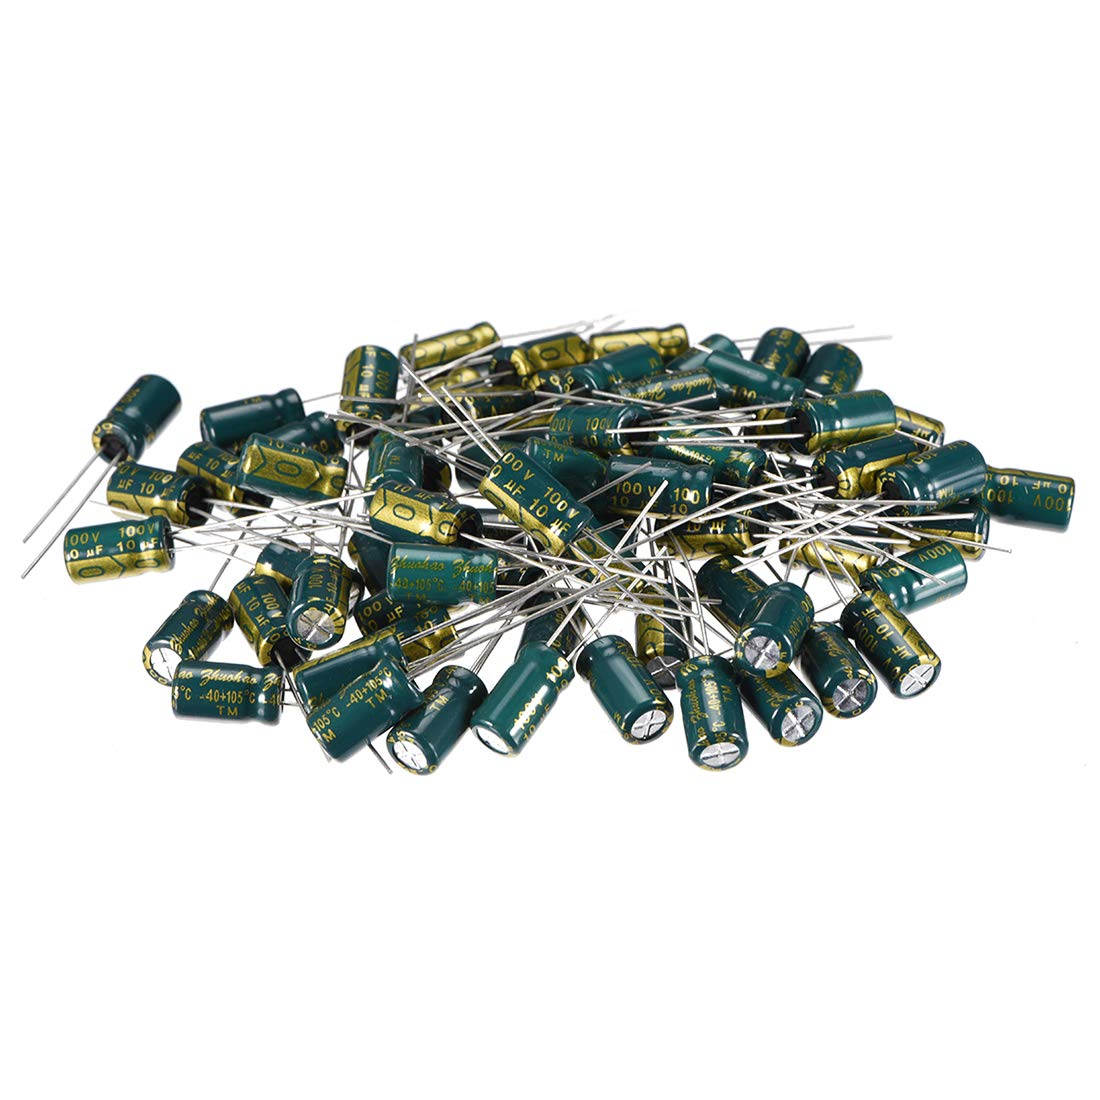 uxcell Safety Capacitors Polypropylene Film 0.15uF 275VAC X2 MKP 10 Pcs